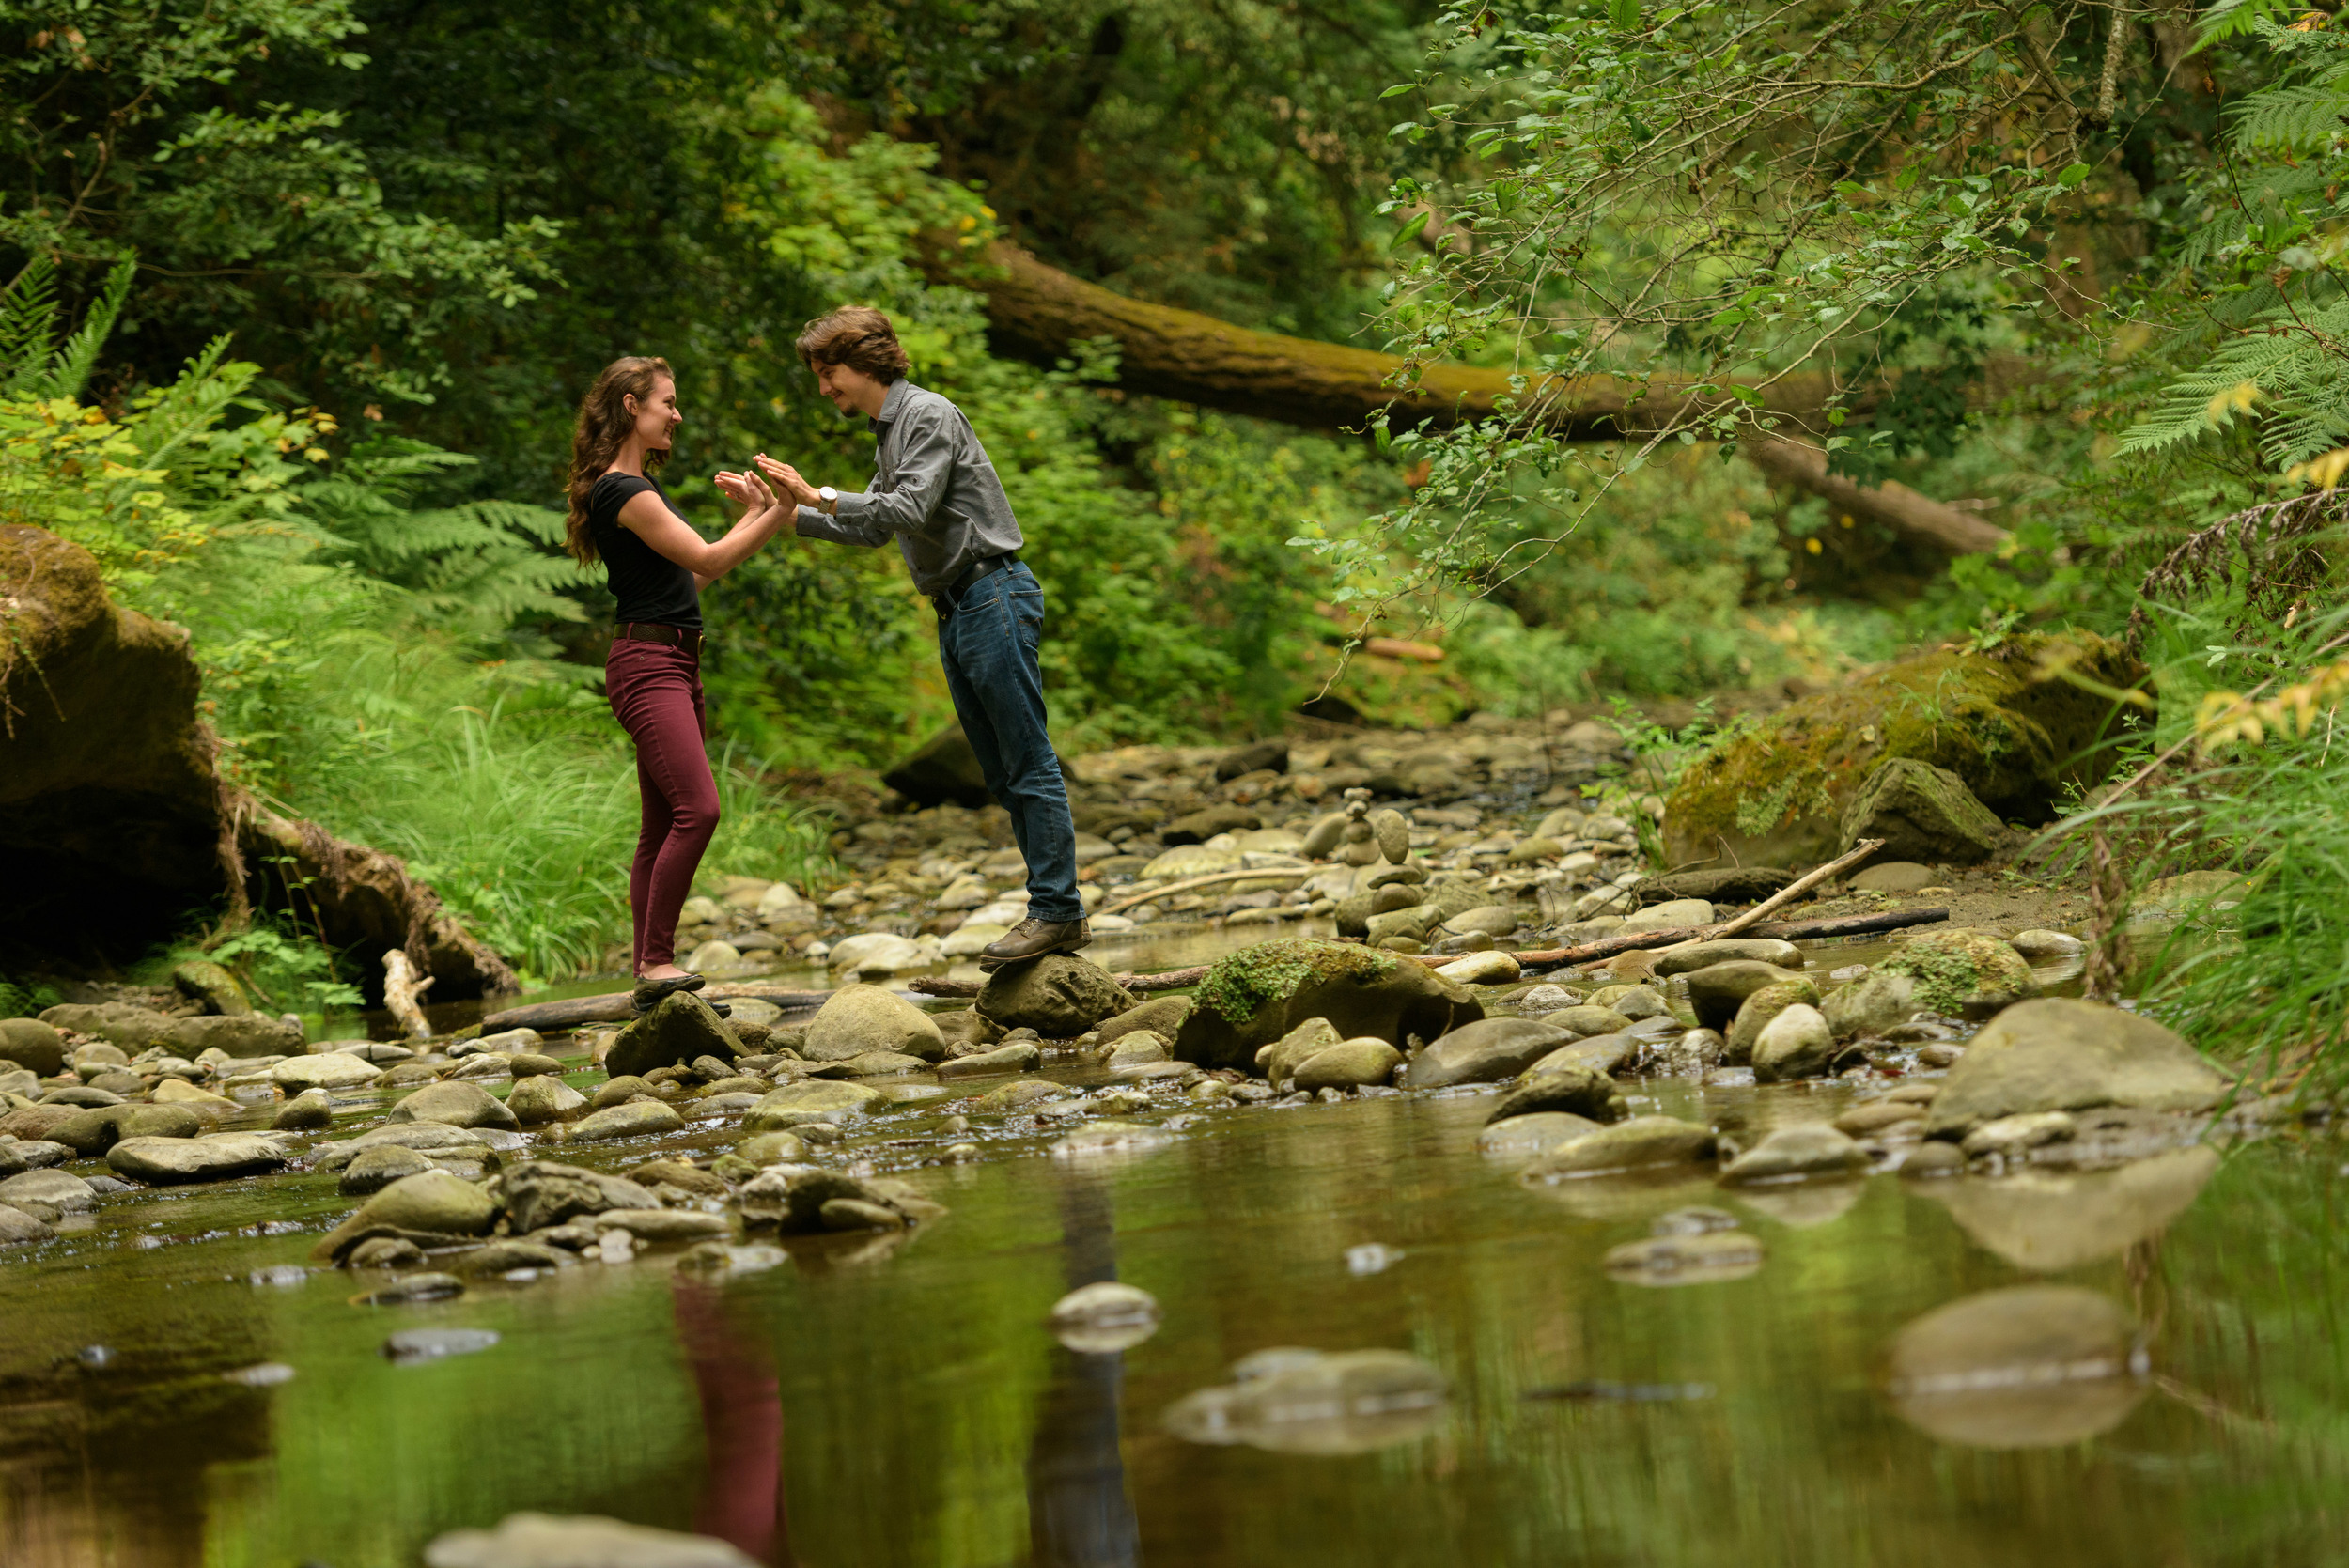 Couple touching hands in the creek - Engagement Photos in Nisene Marks Forest in Aptos, CA - by Bay Area wedding photographer Chris Schmauch